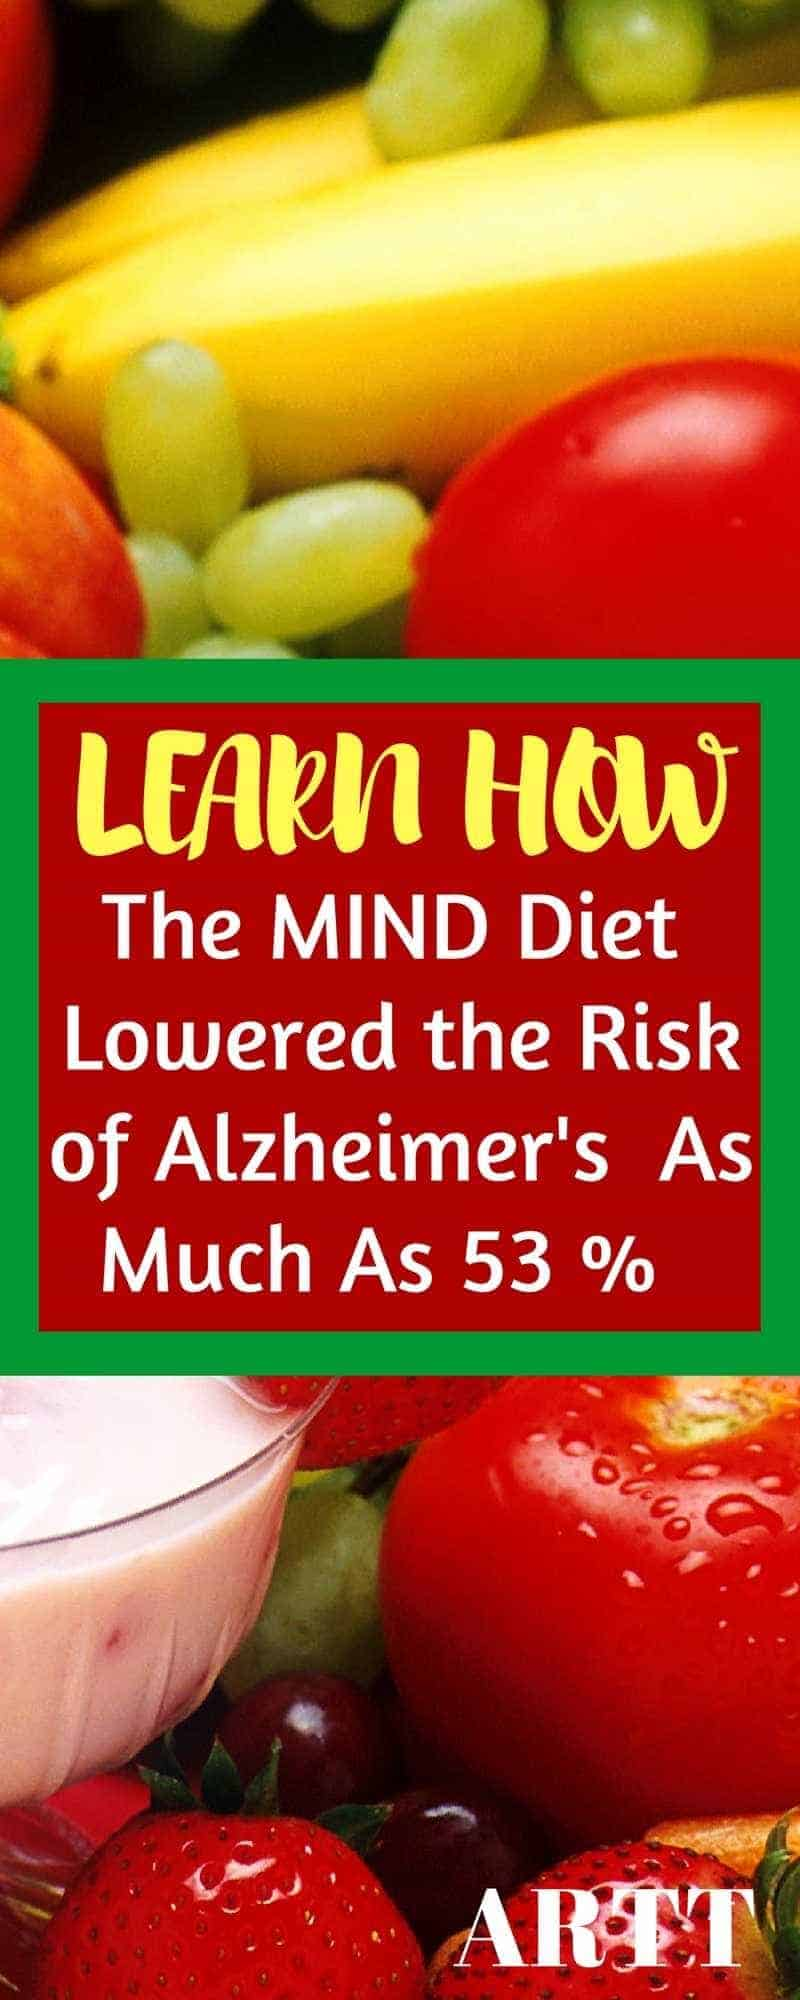 MIND Diet Lowers Risk of Alzheimer's | Alzheimer's | Weight Loss | Weight Loss Foods  | Weight Loss Foods 10 Pounds | Weight Loss Foods Recipes | Fast Weight Loss Foods | Weight Loss Foods Fat Burning Recipes | Weight Loss Foods Diet Plans | Diet Plans | ARoadtoTravel.com